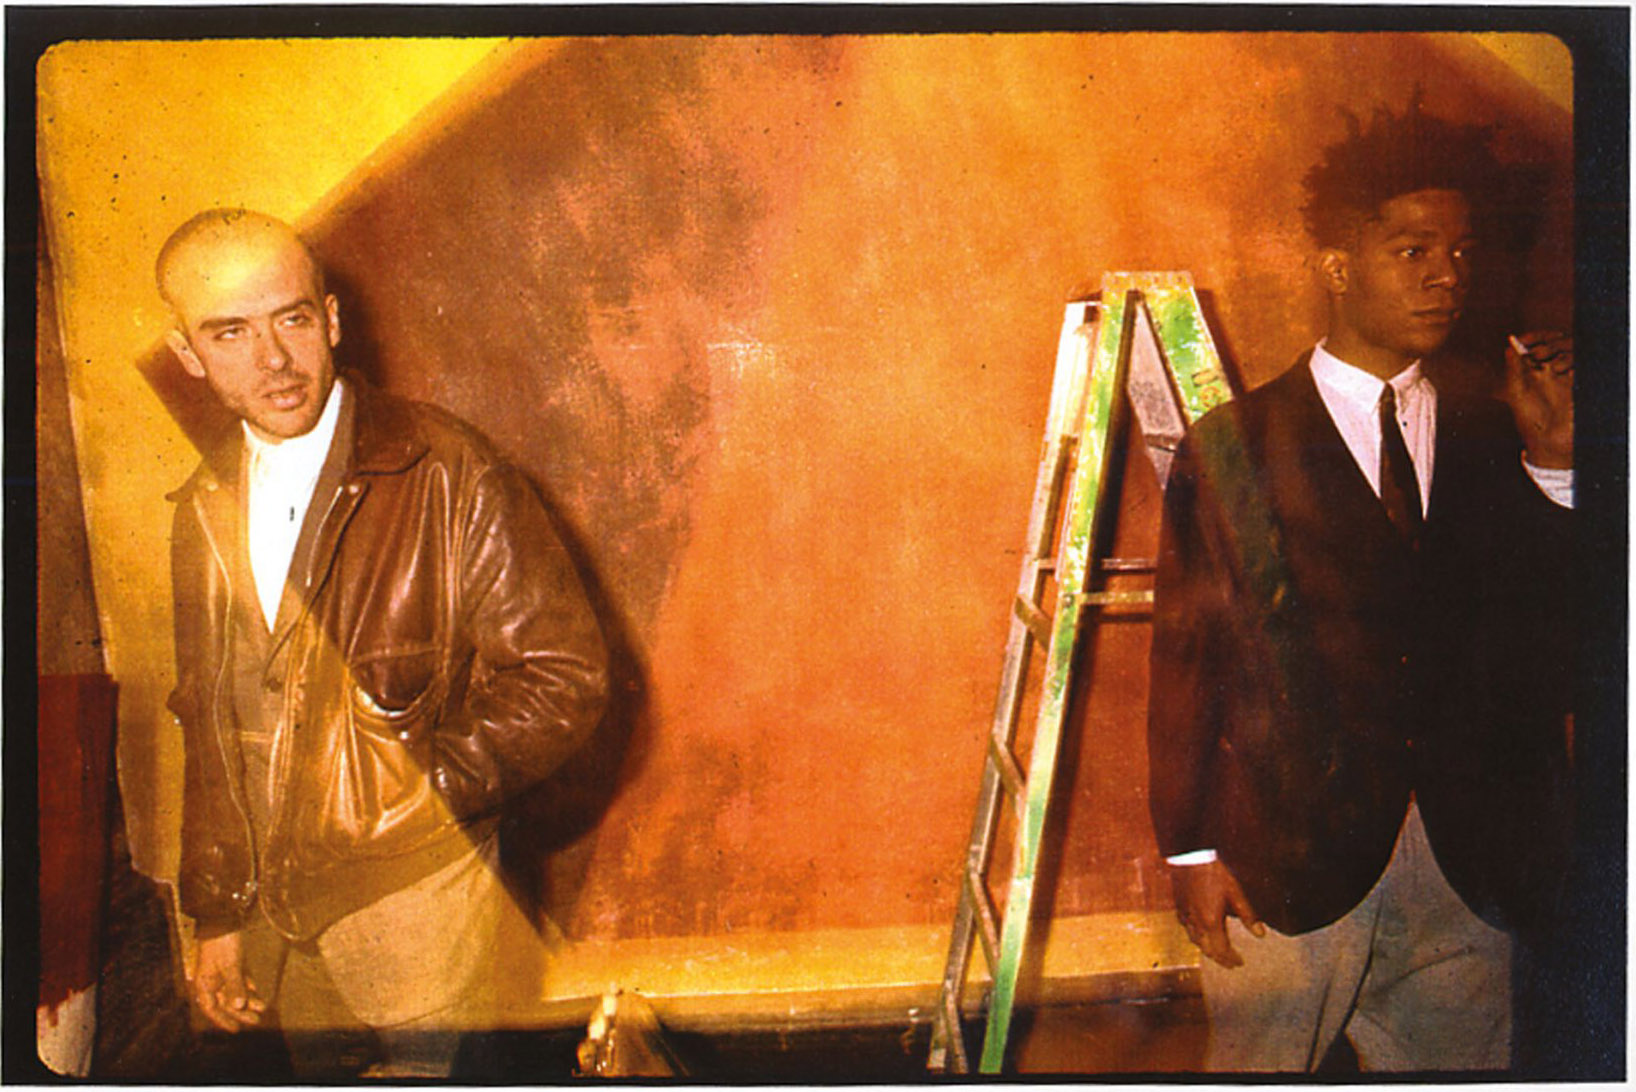 Francesco Clemente and Jean Michel Basquiat at the Area Club, NY 1985